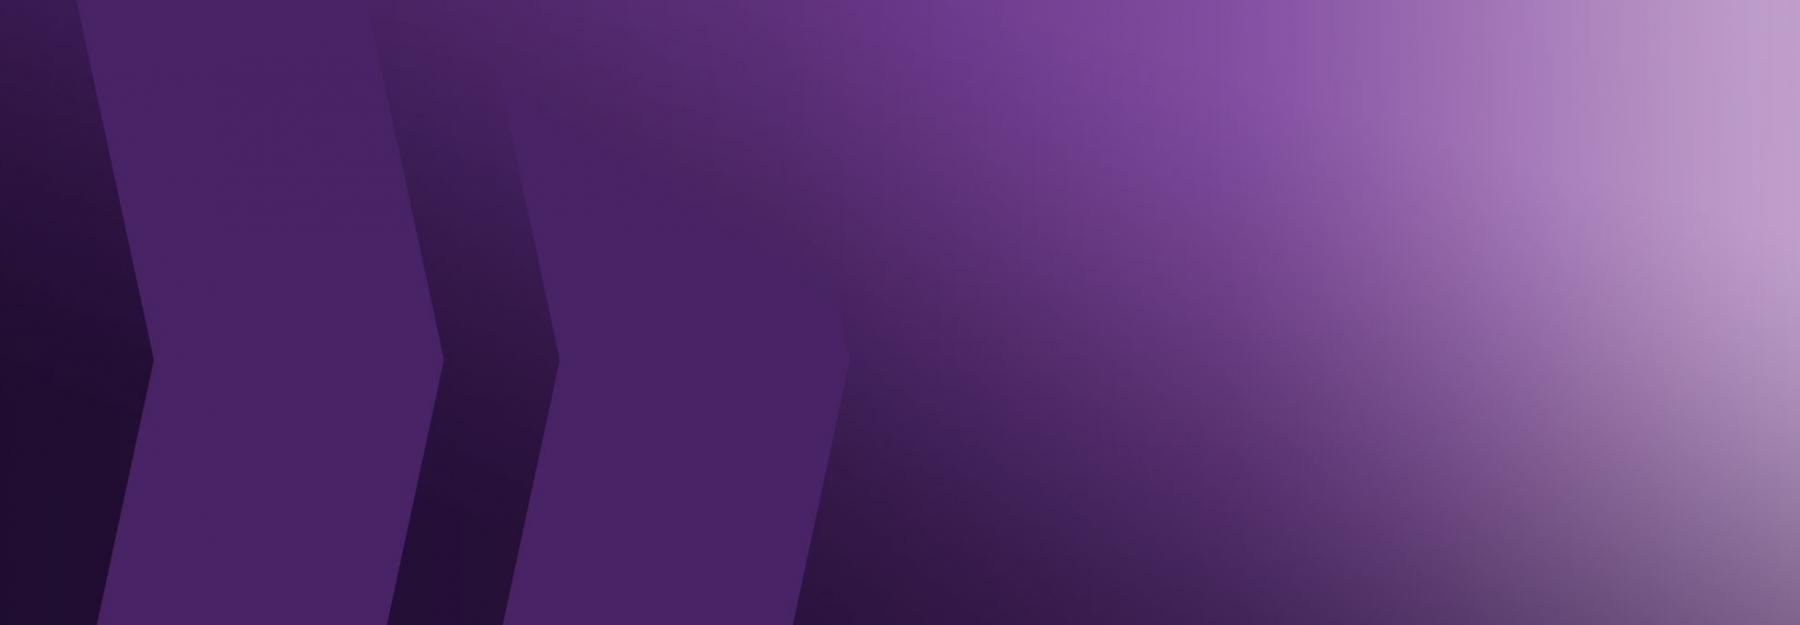 purple wash banner